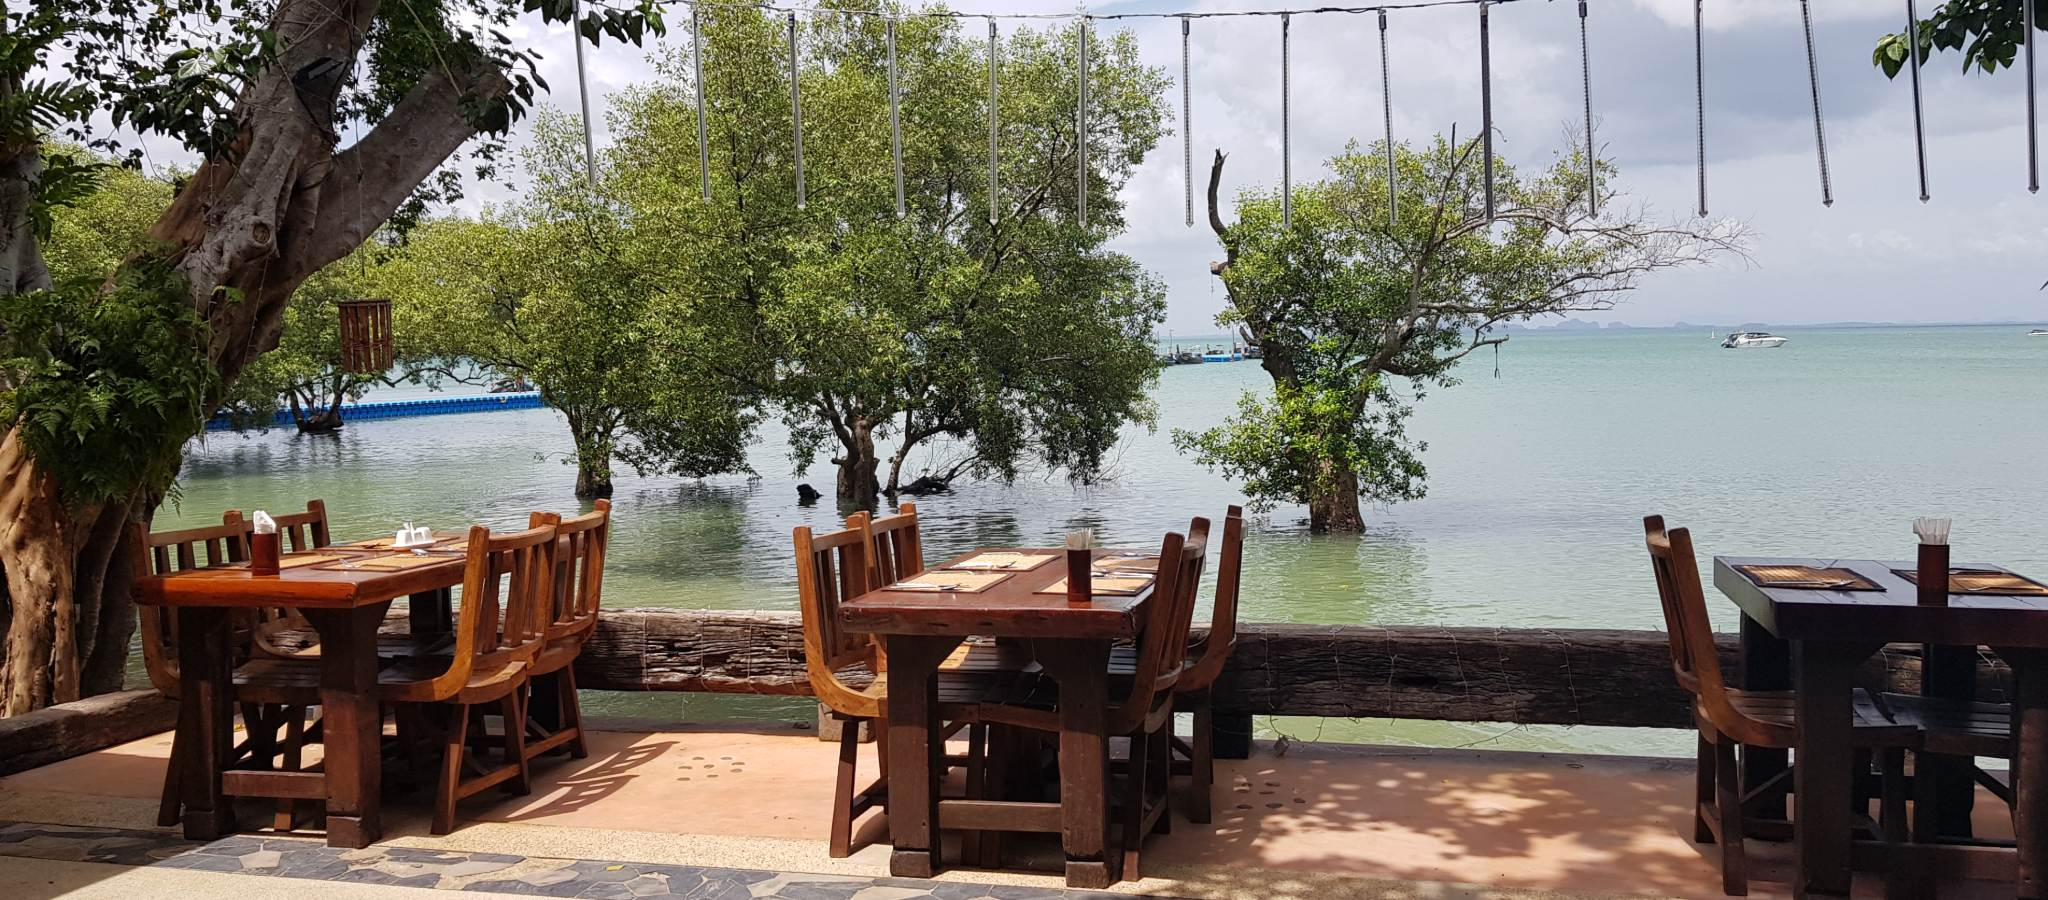 Tropical Sunrise Restaurant met uitzicht op de zee van Railay West